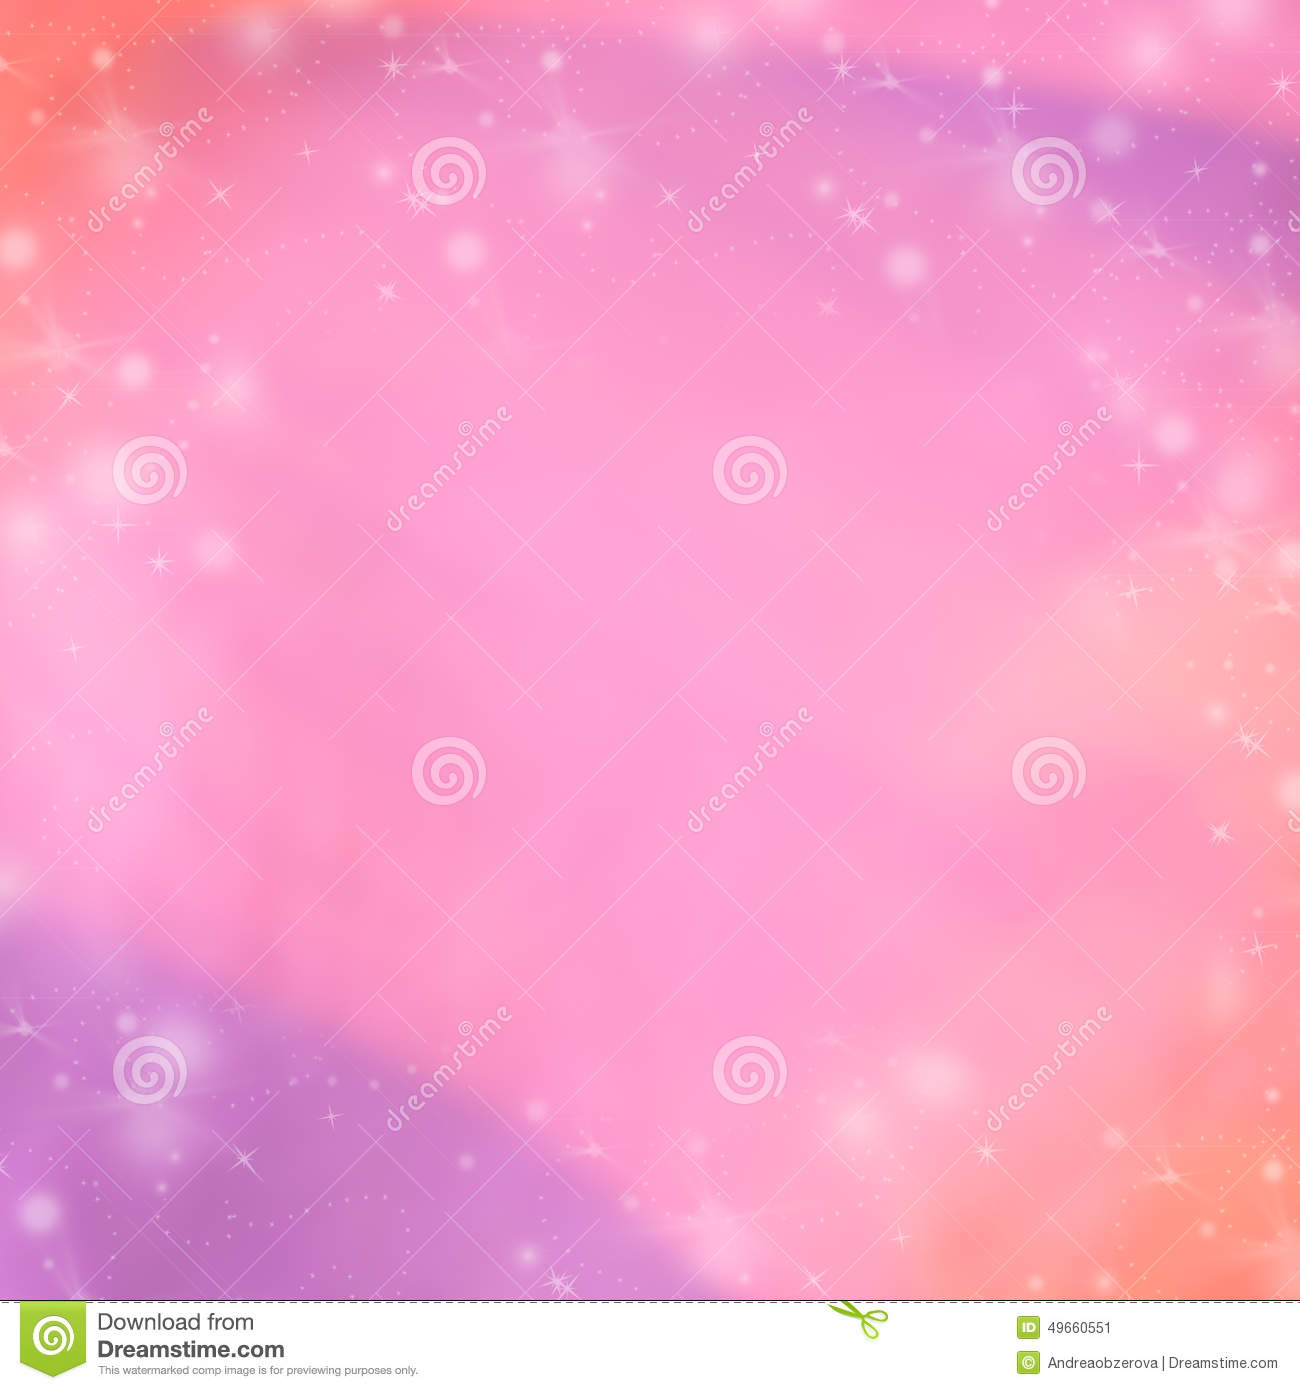 pink and purple abstract winter background blurred